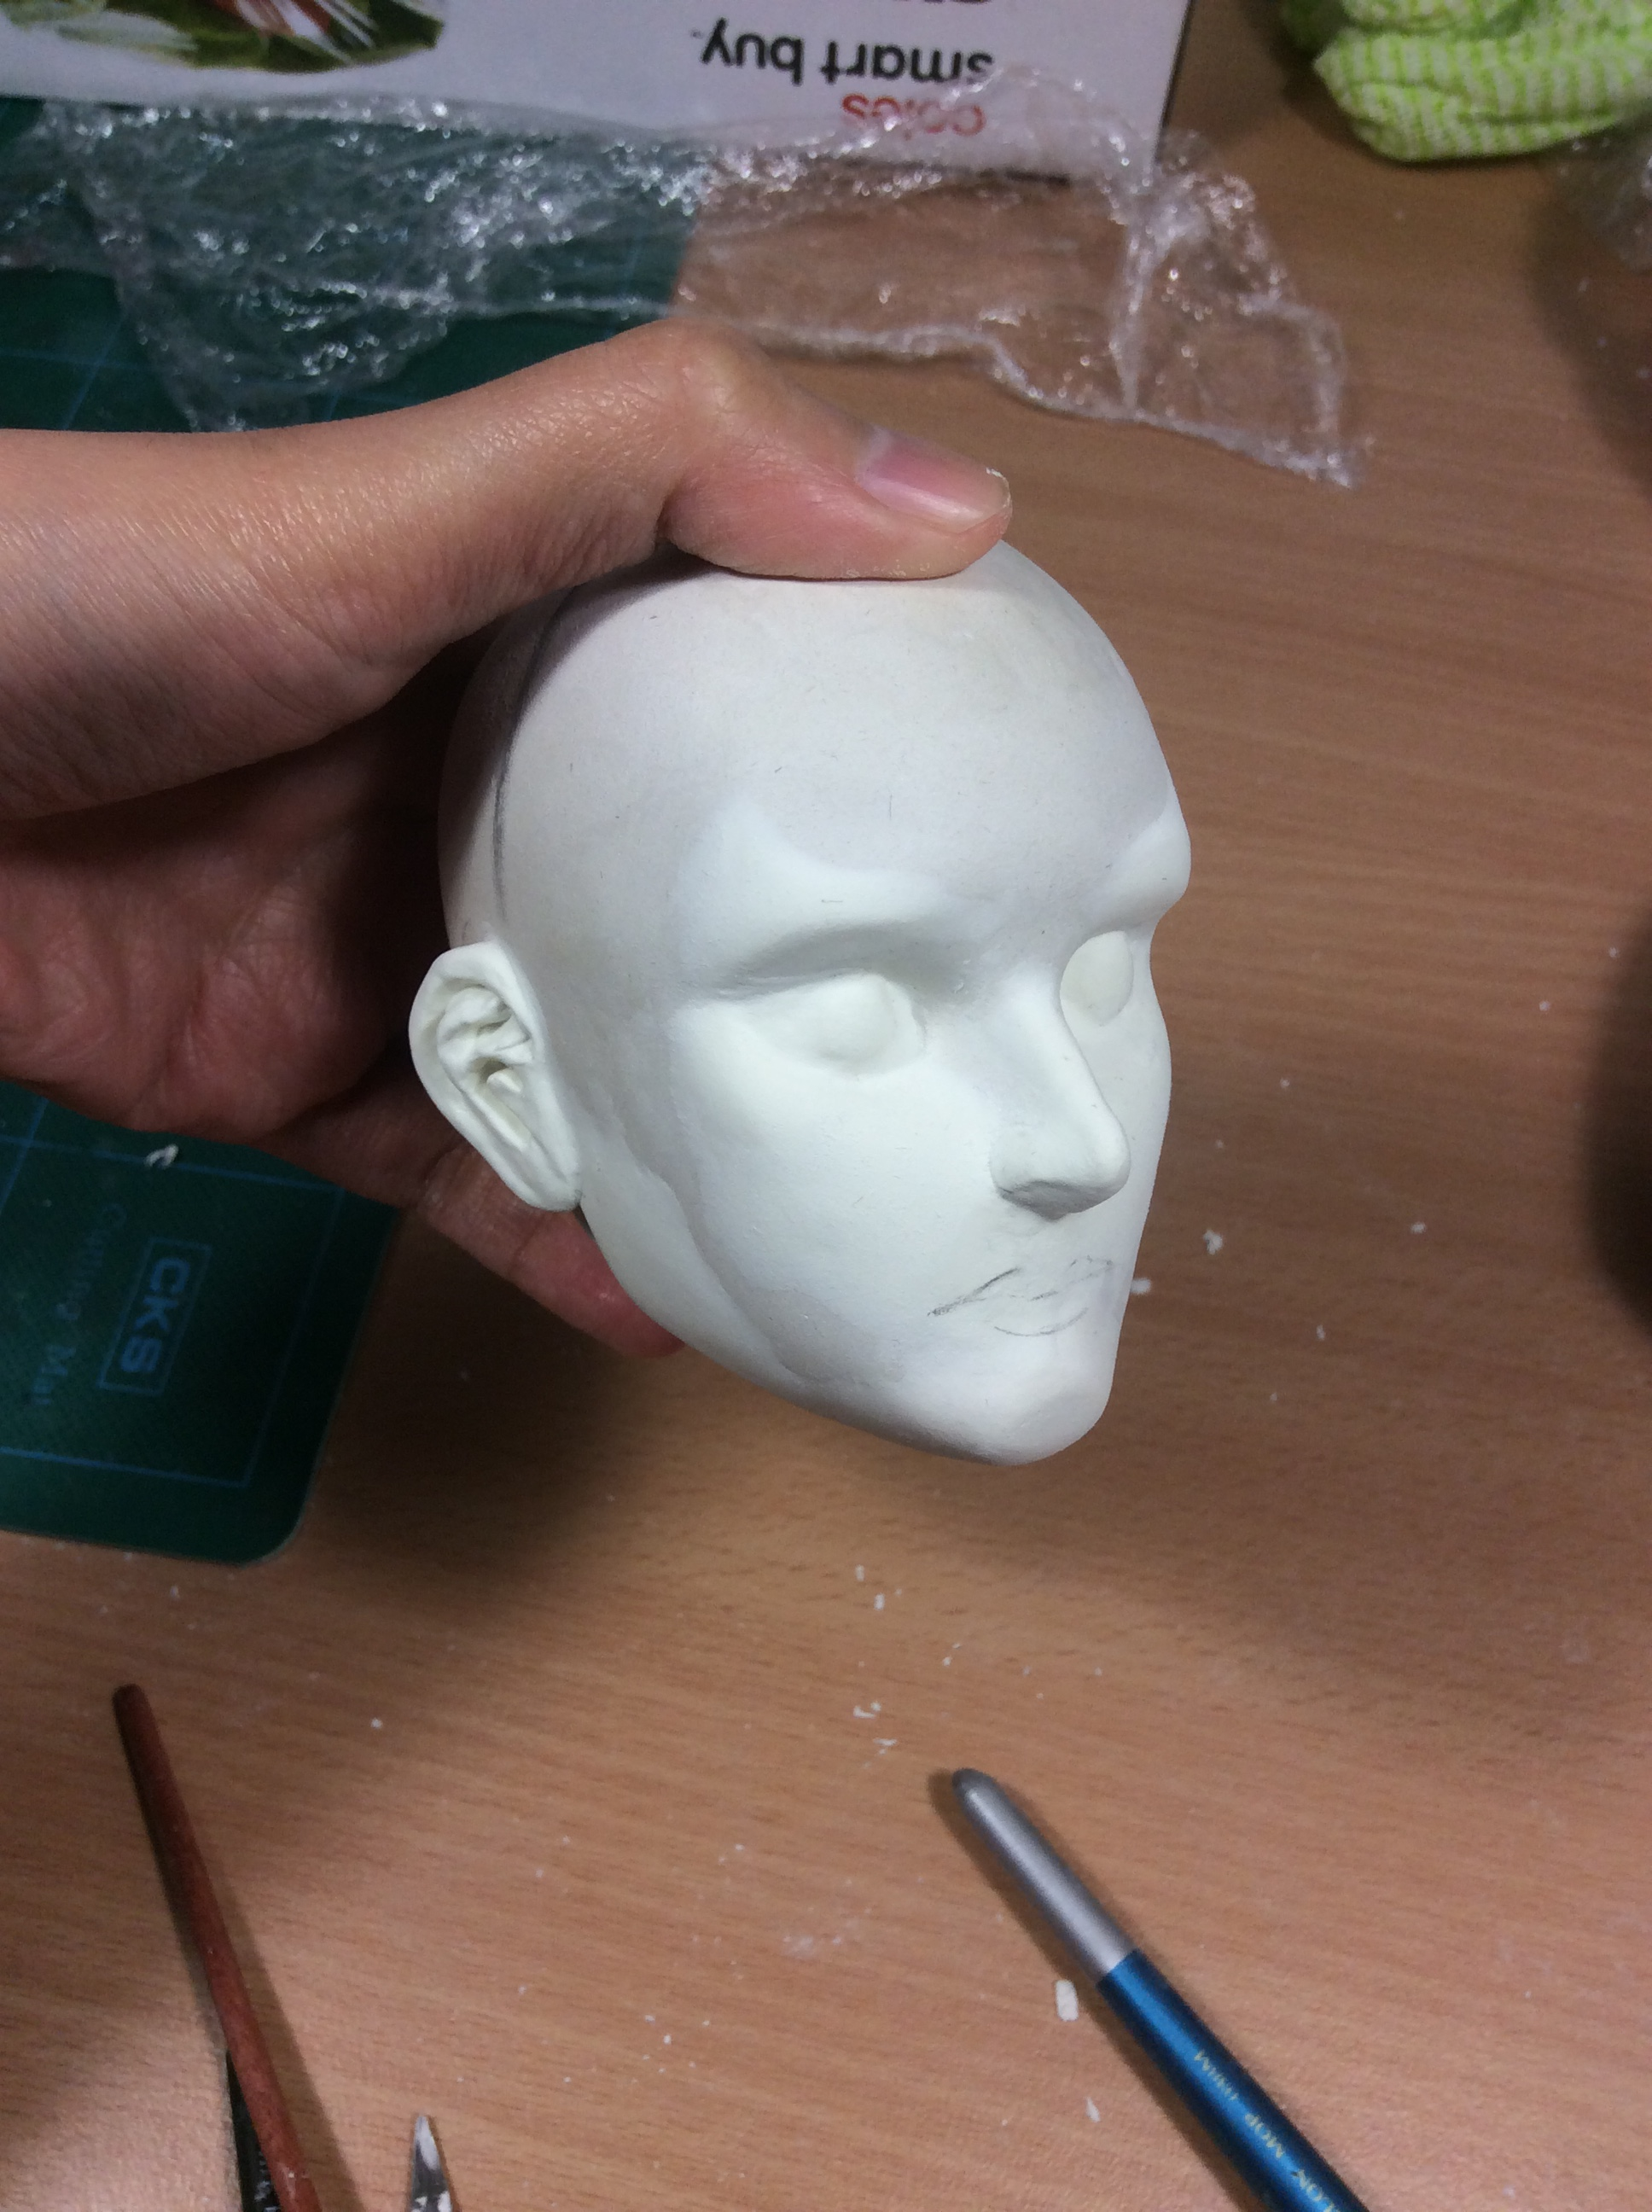 jemse---my-first-doll-head-making-progress-diary-part-2_32413511675_o